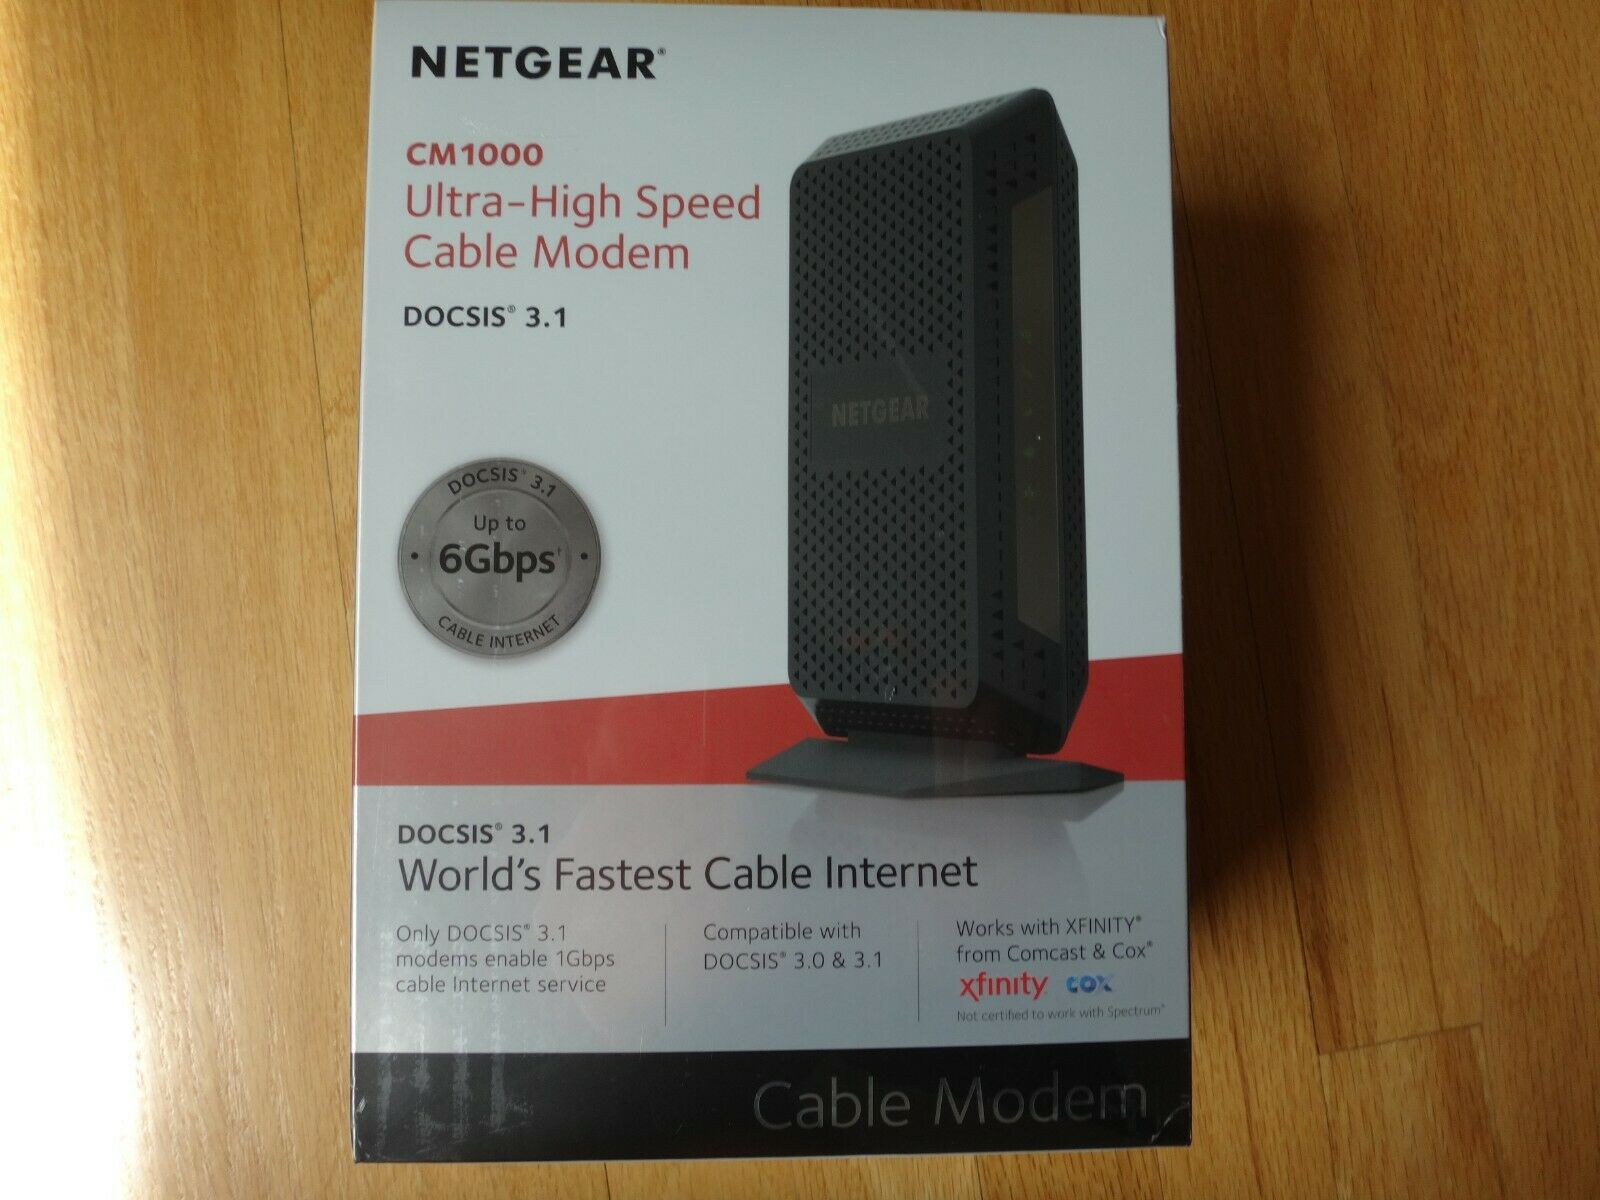 NETGEAR Gigabit Cable Modem  DOCSIS 3.1 | for XFINITY by Com